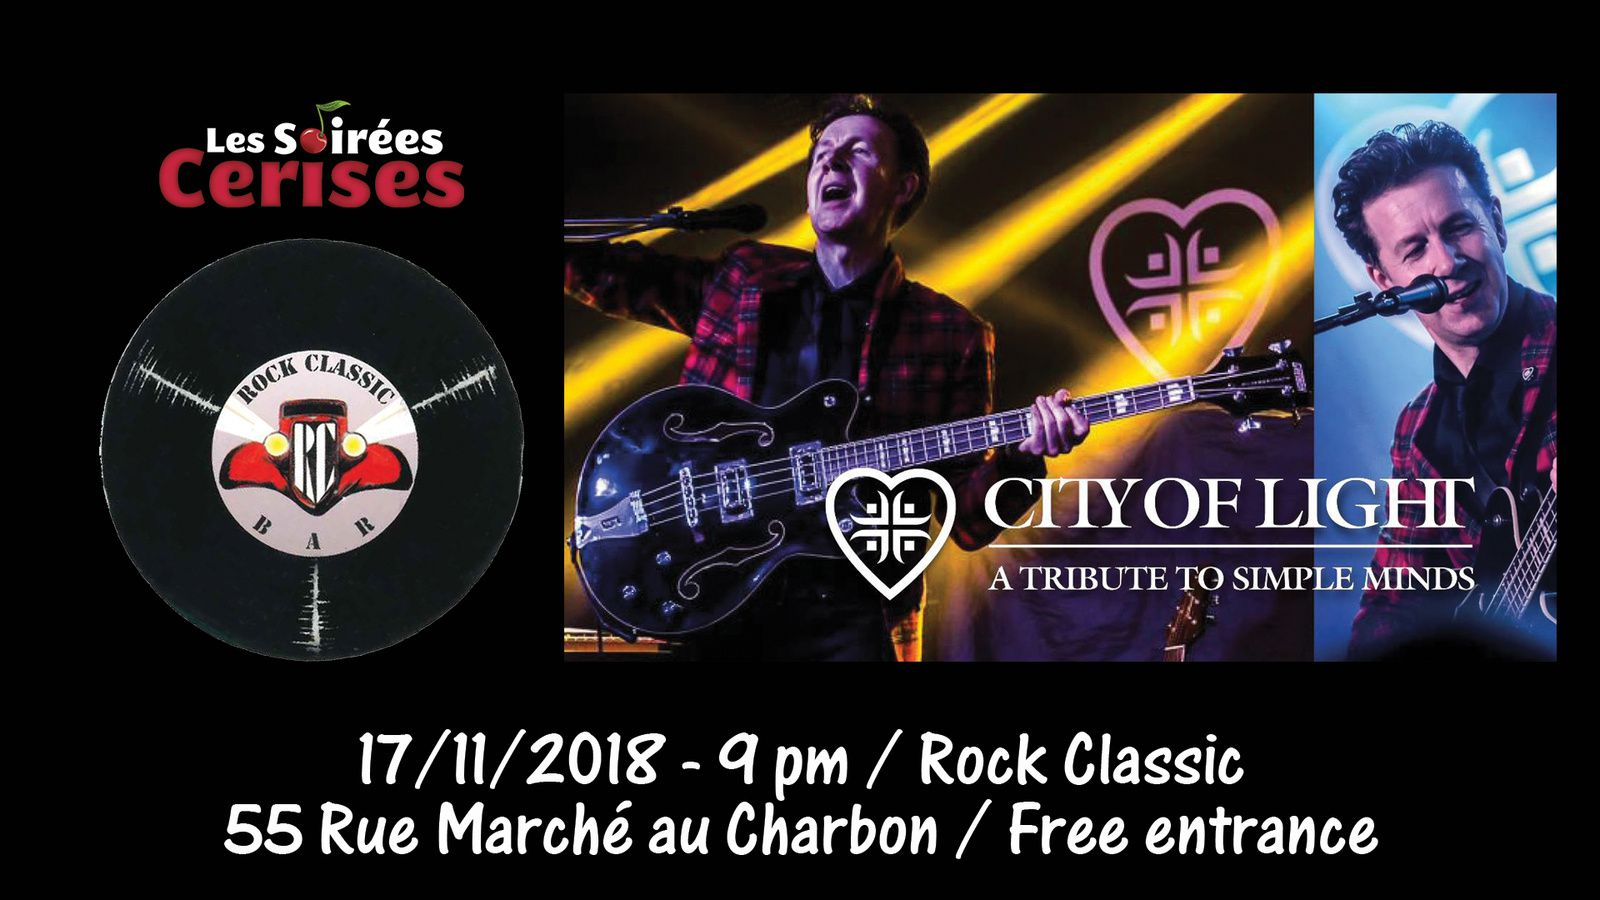 ▶ City of Light (Simple Minds tribute band) @ Rock Classic - 17/11/2018 - 21h00 - Entrée gratuite !